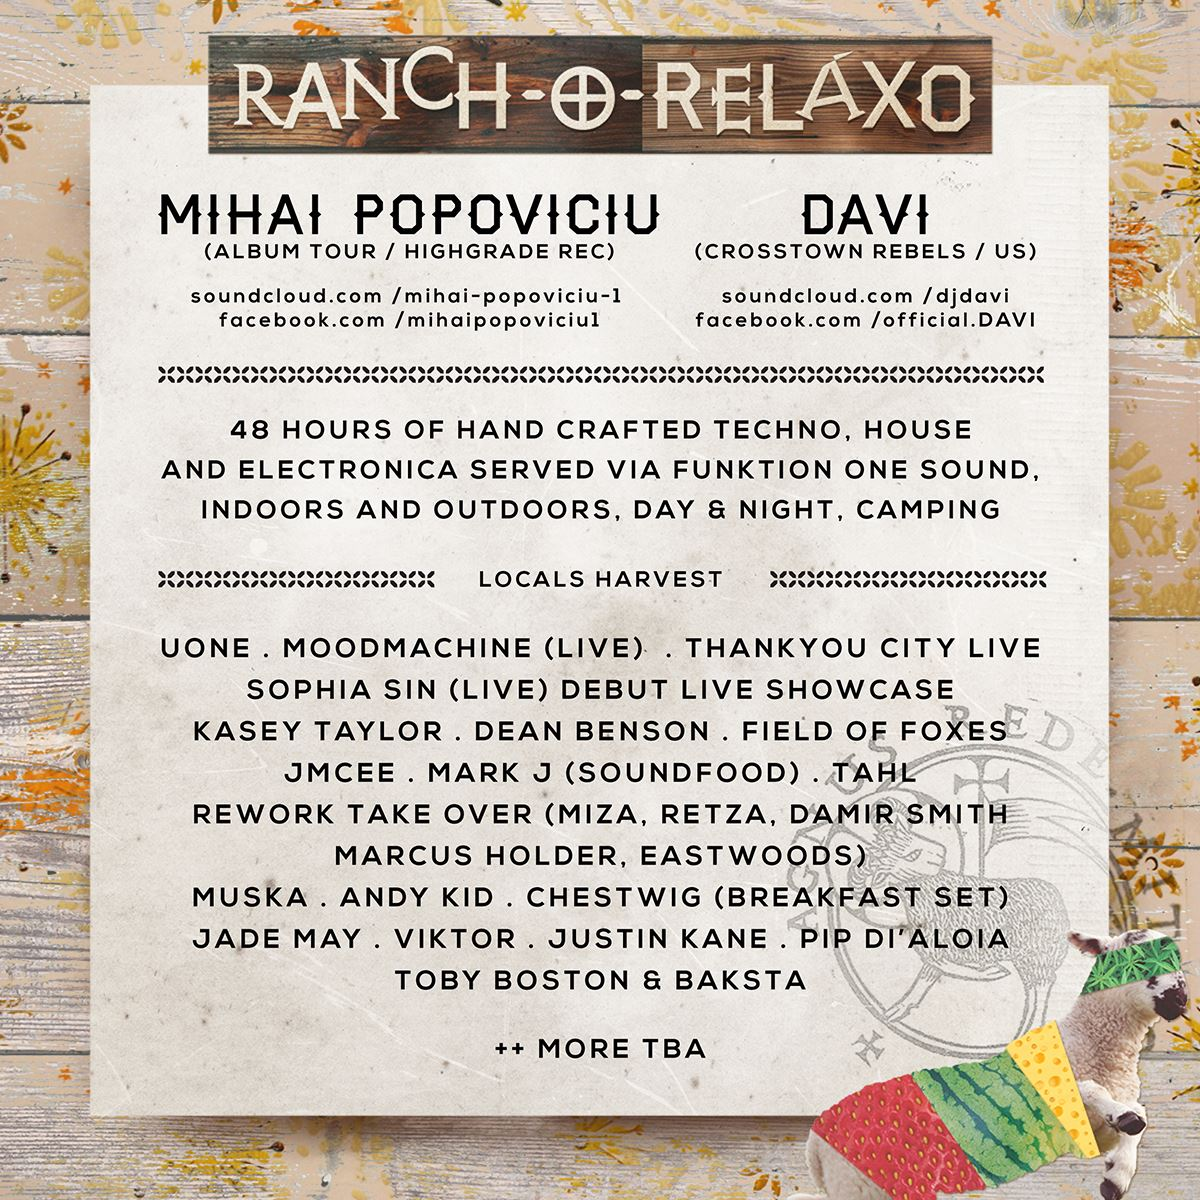 RANCHO LINE UP